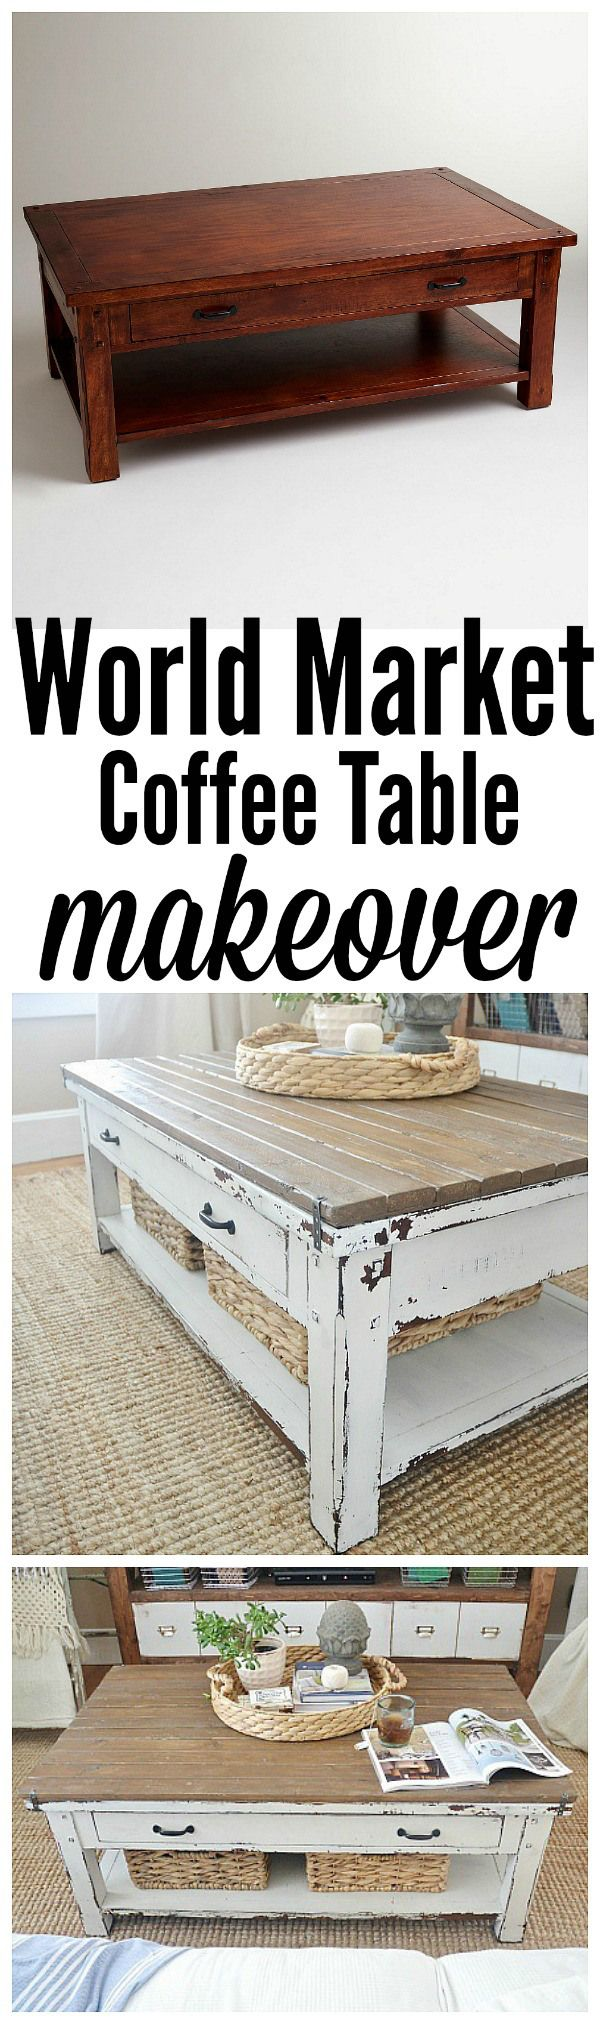 best 20+ coffee table makeover ideas on pinterest | ottoman ideas